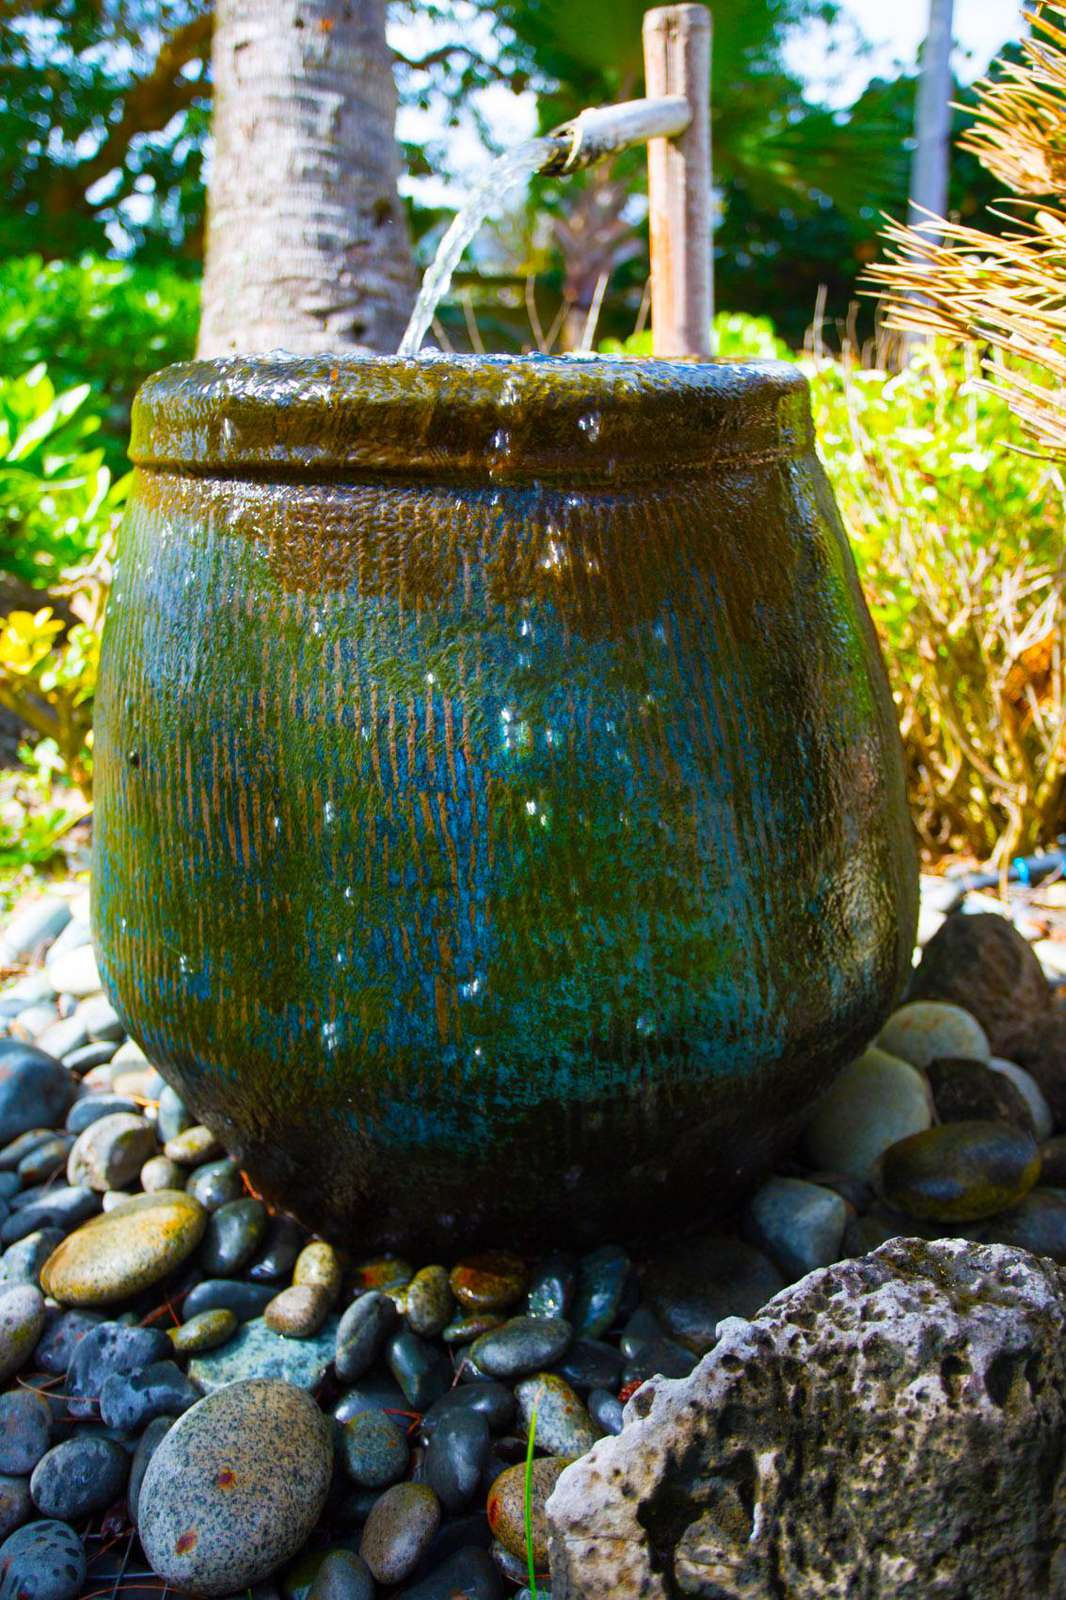 Garden water vase by COCO BUNGALOW